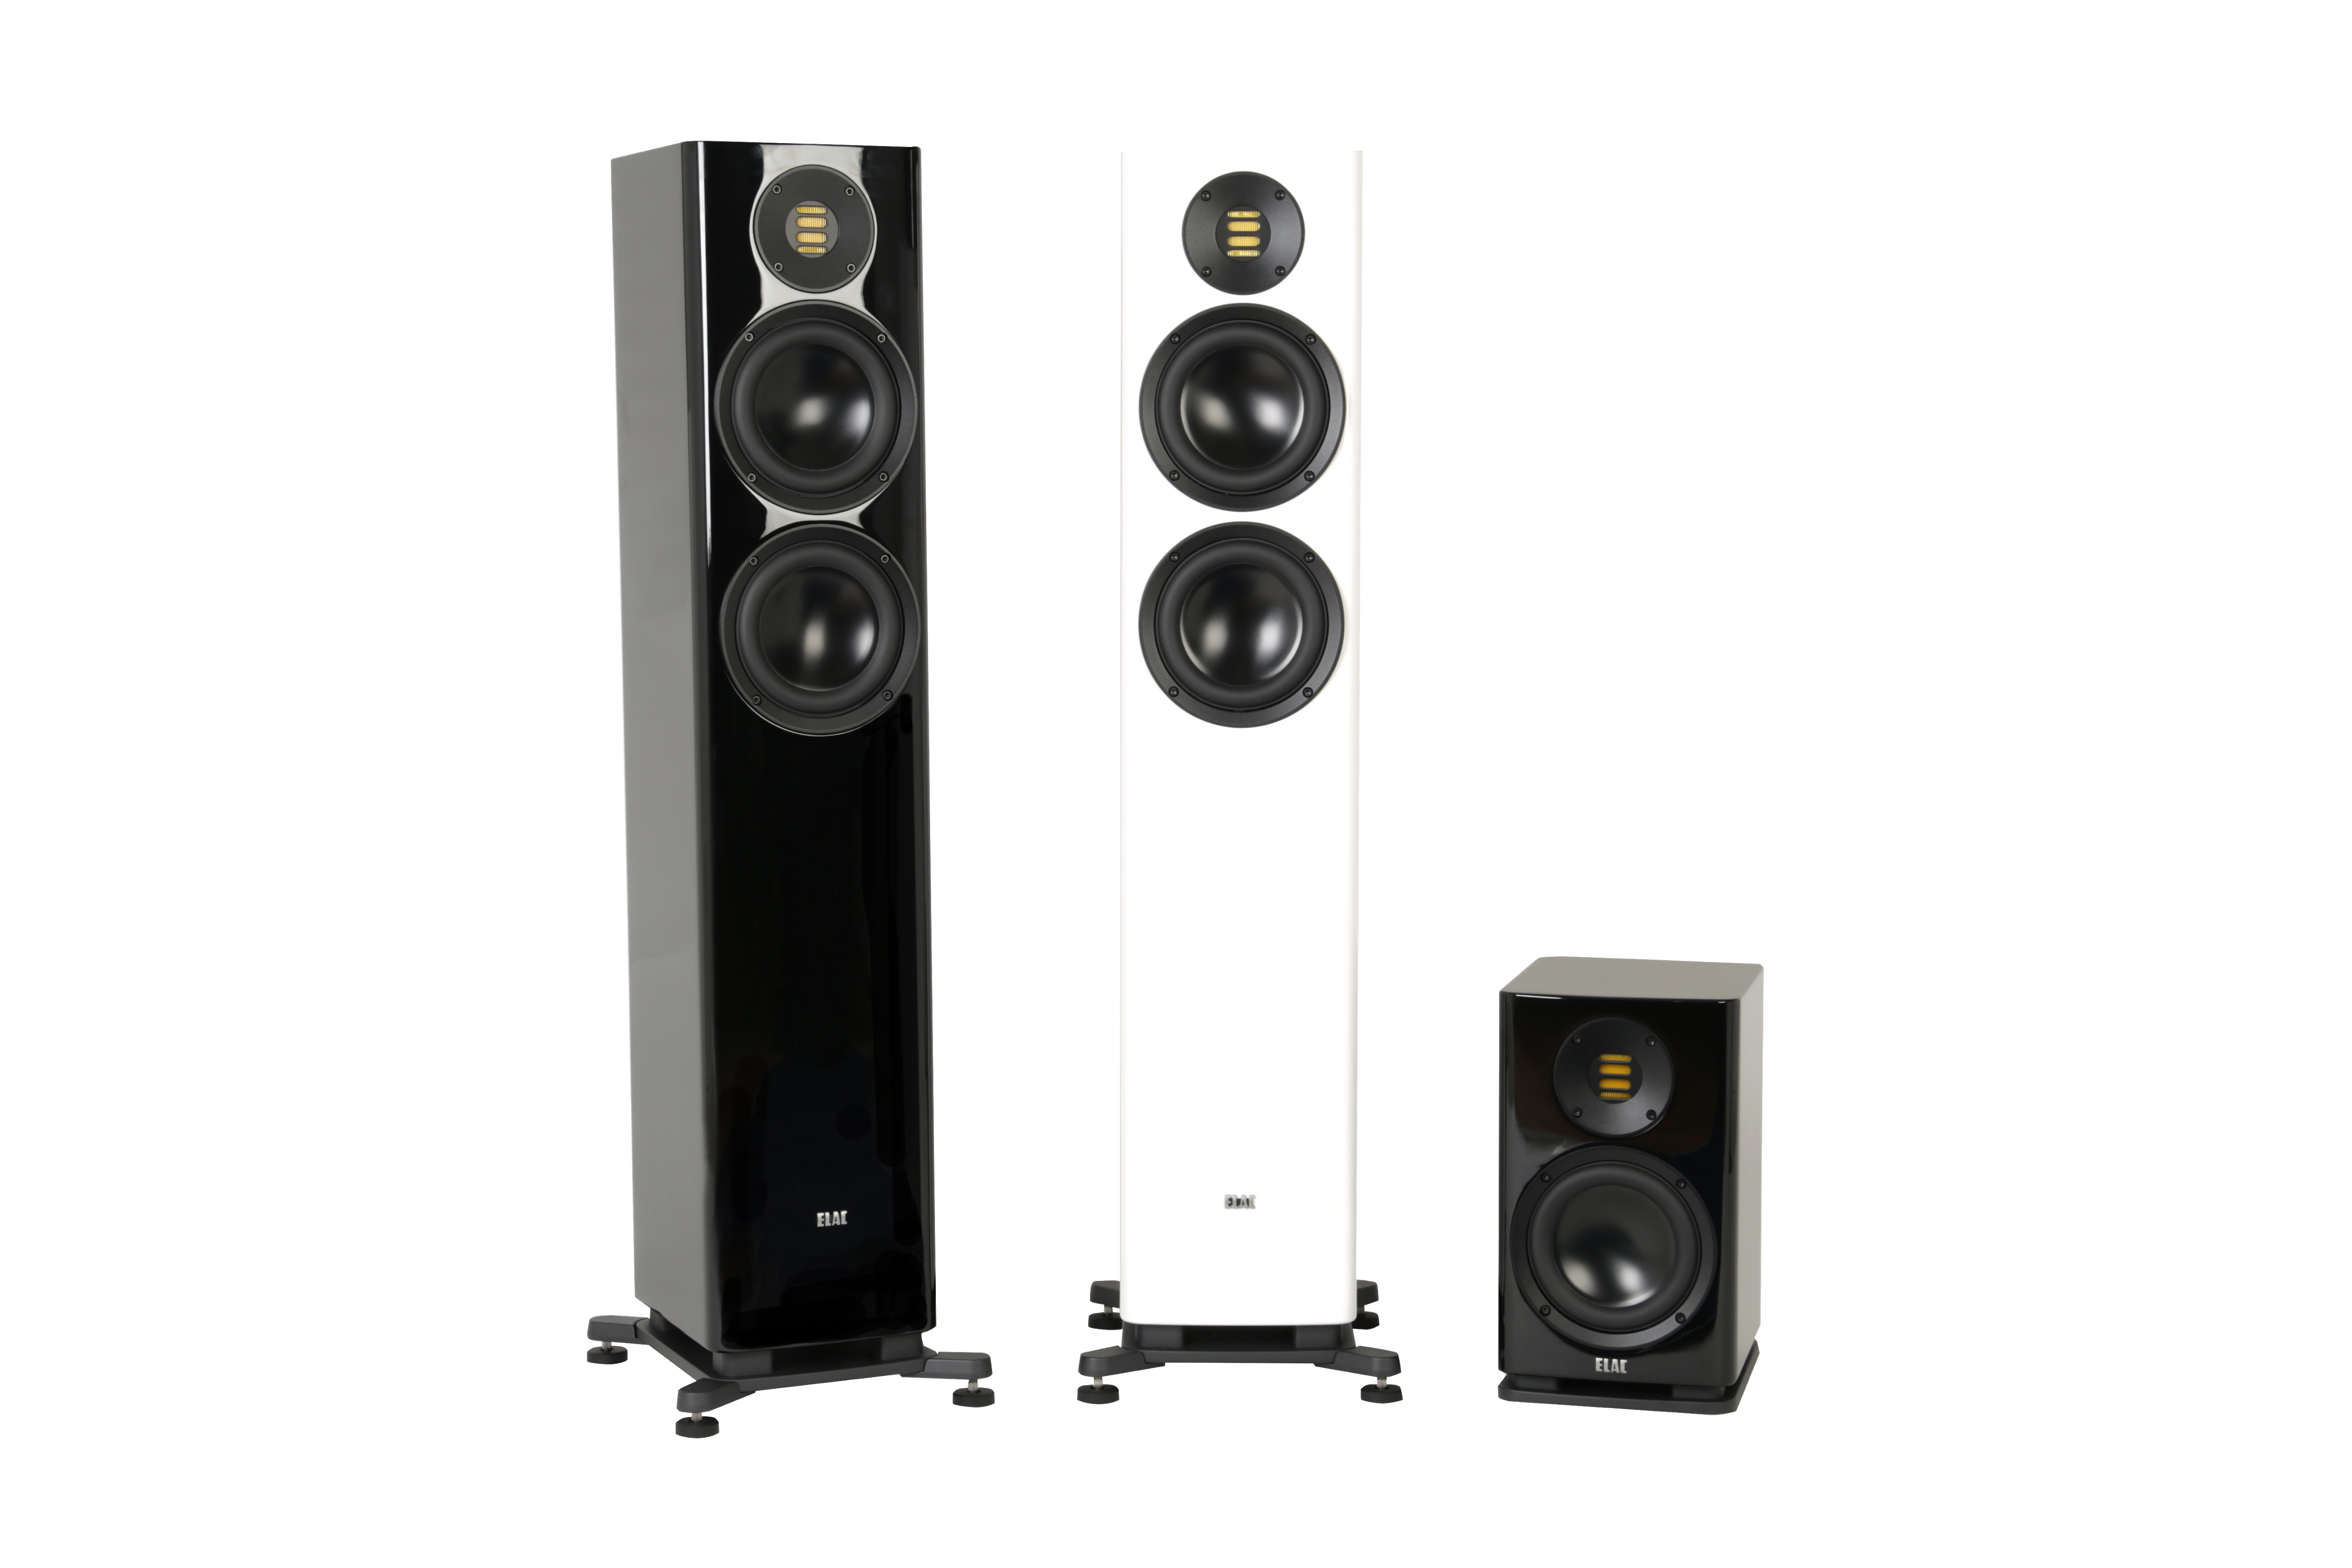 ELAC Announces the Solano Line of Home Speakers